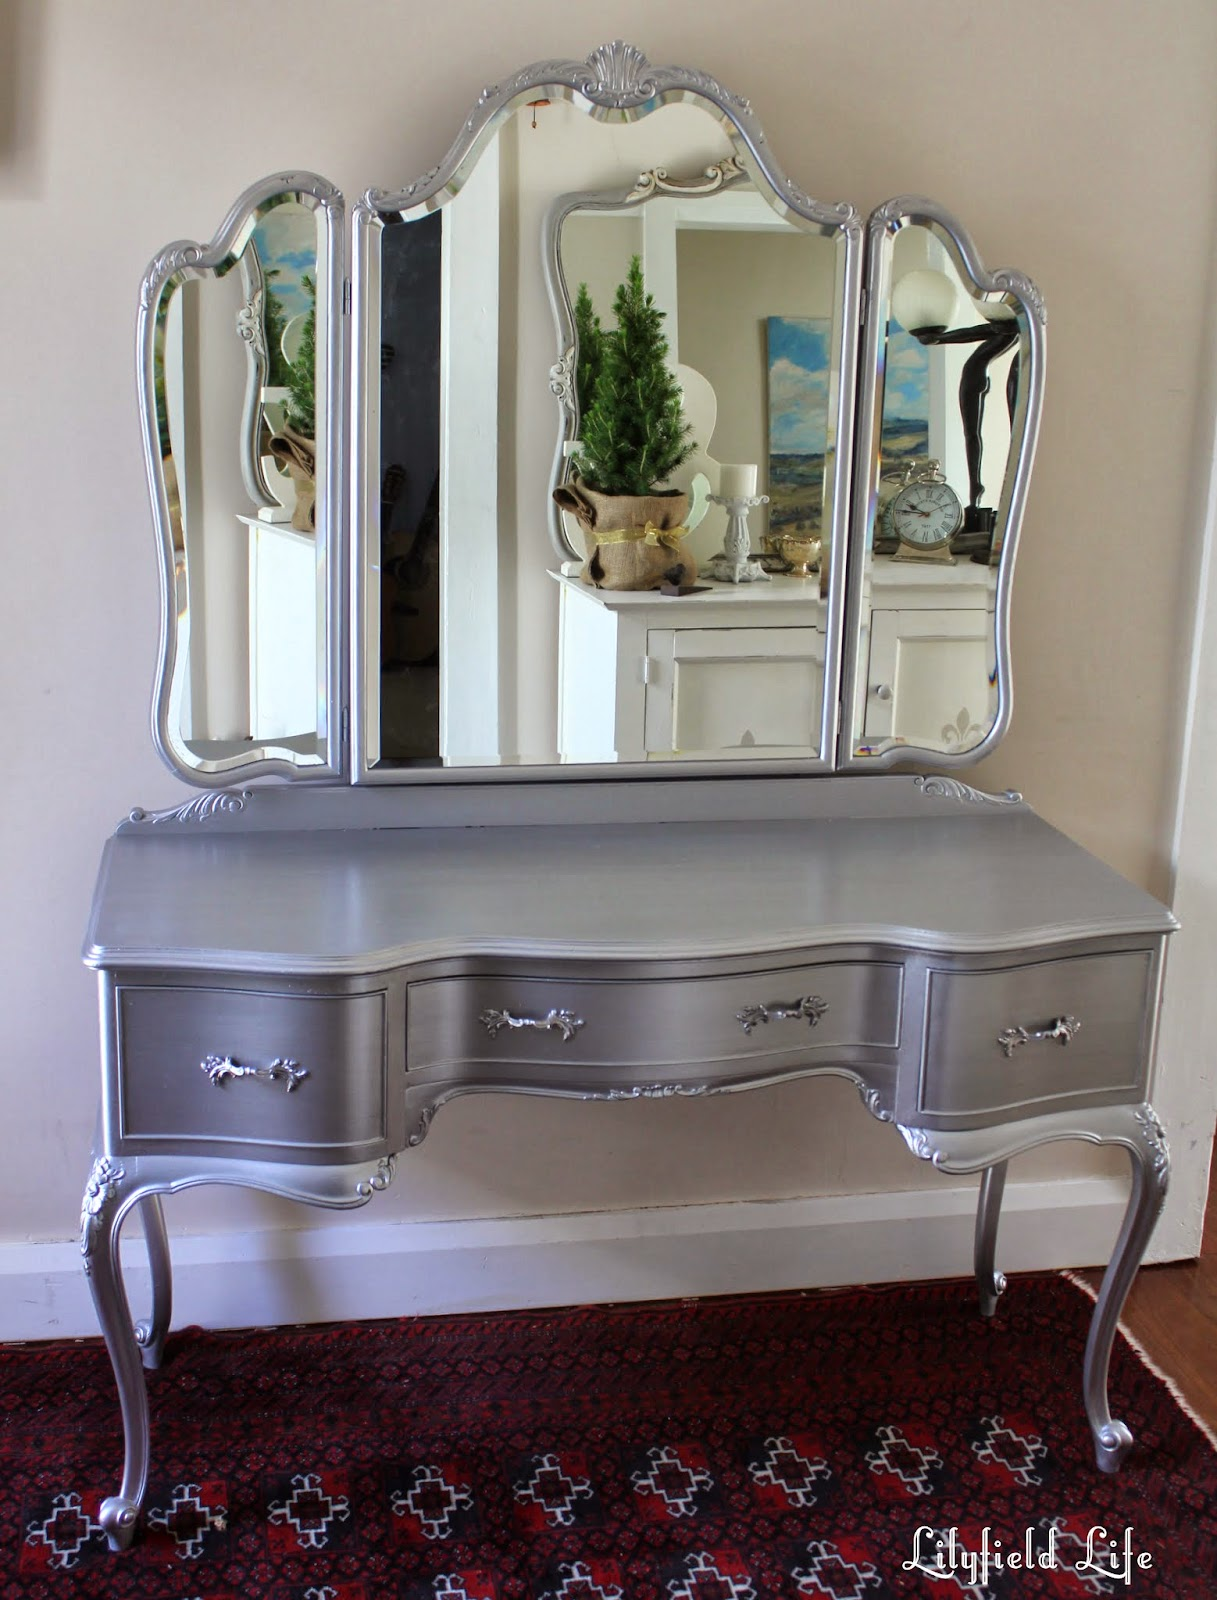 Metal Makeup Vanity Table Set Lilyfield Life Tips On Using Metallic Paint And A Silver